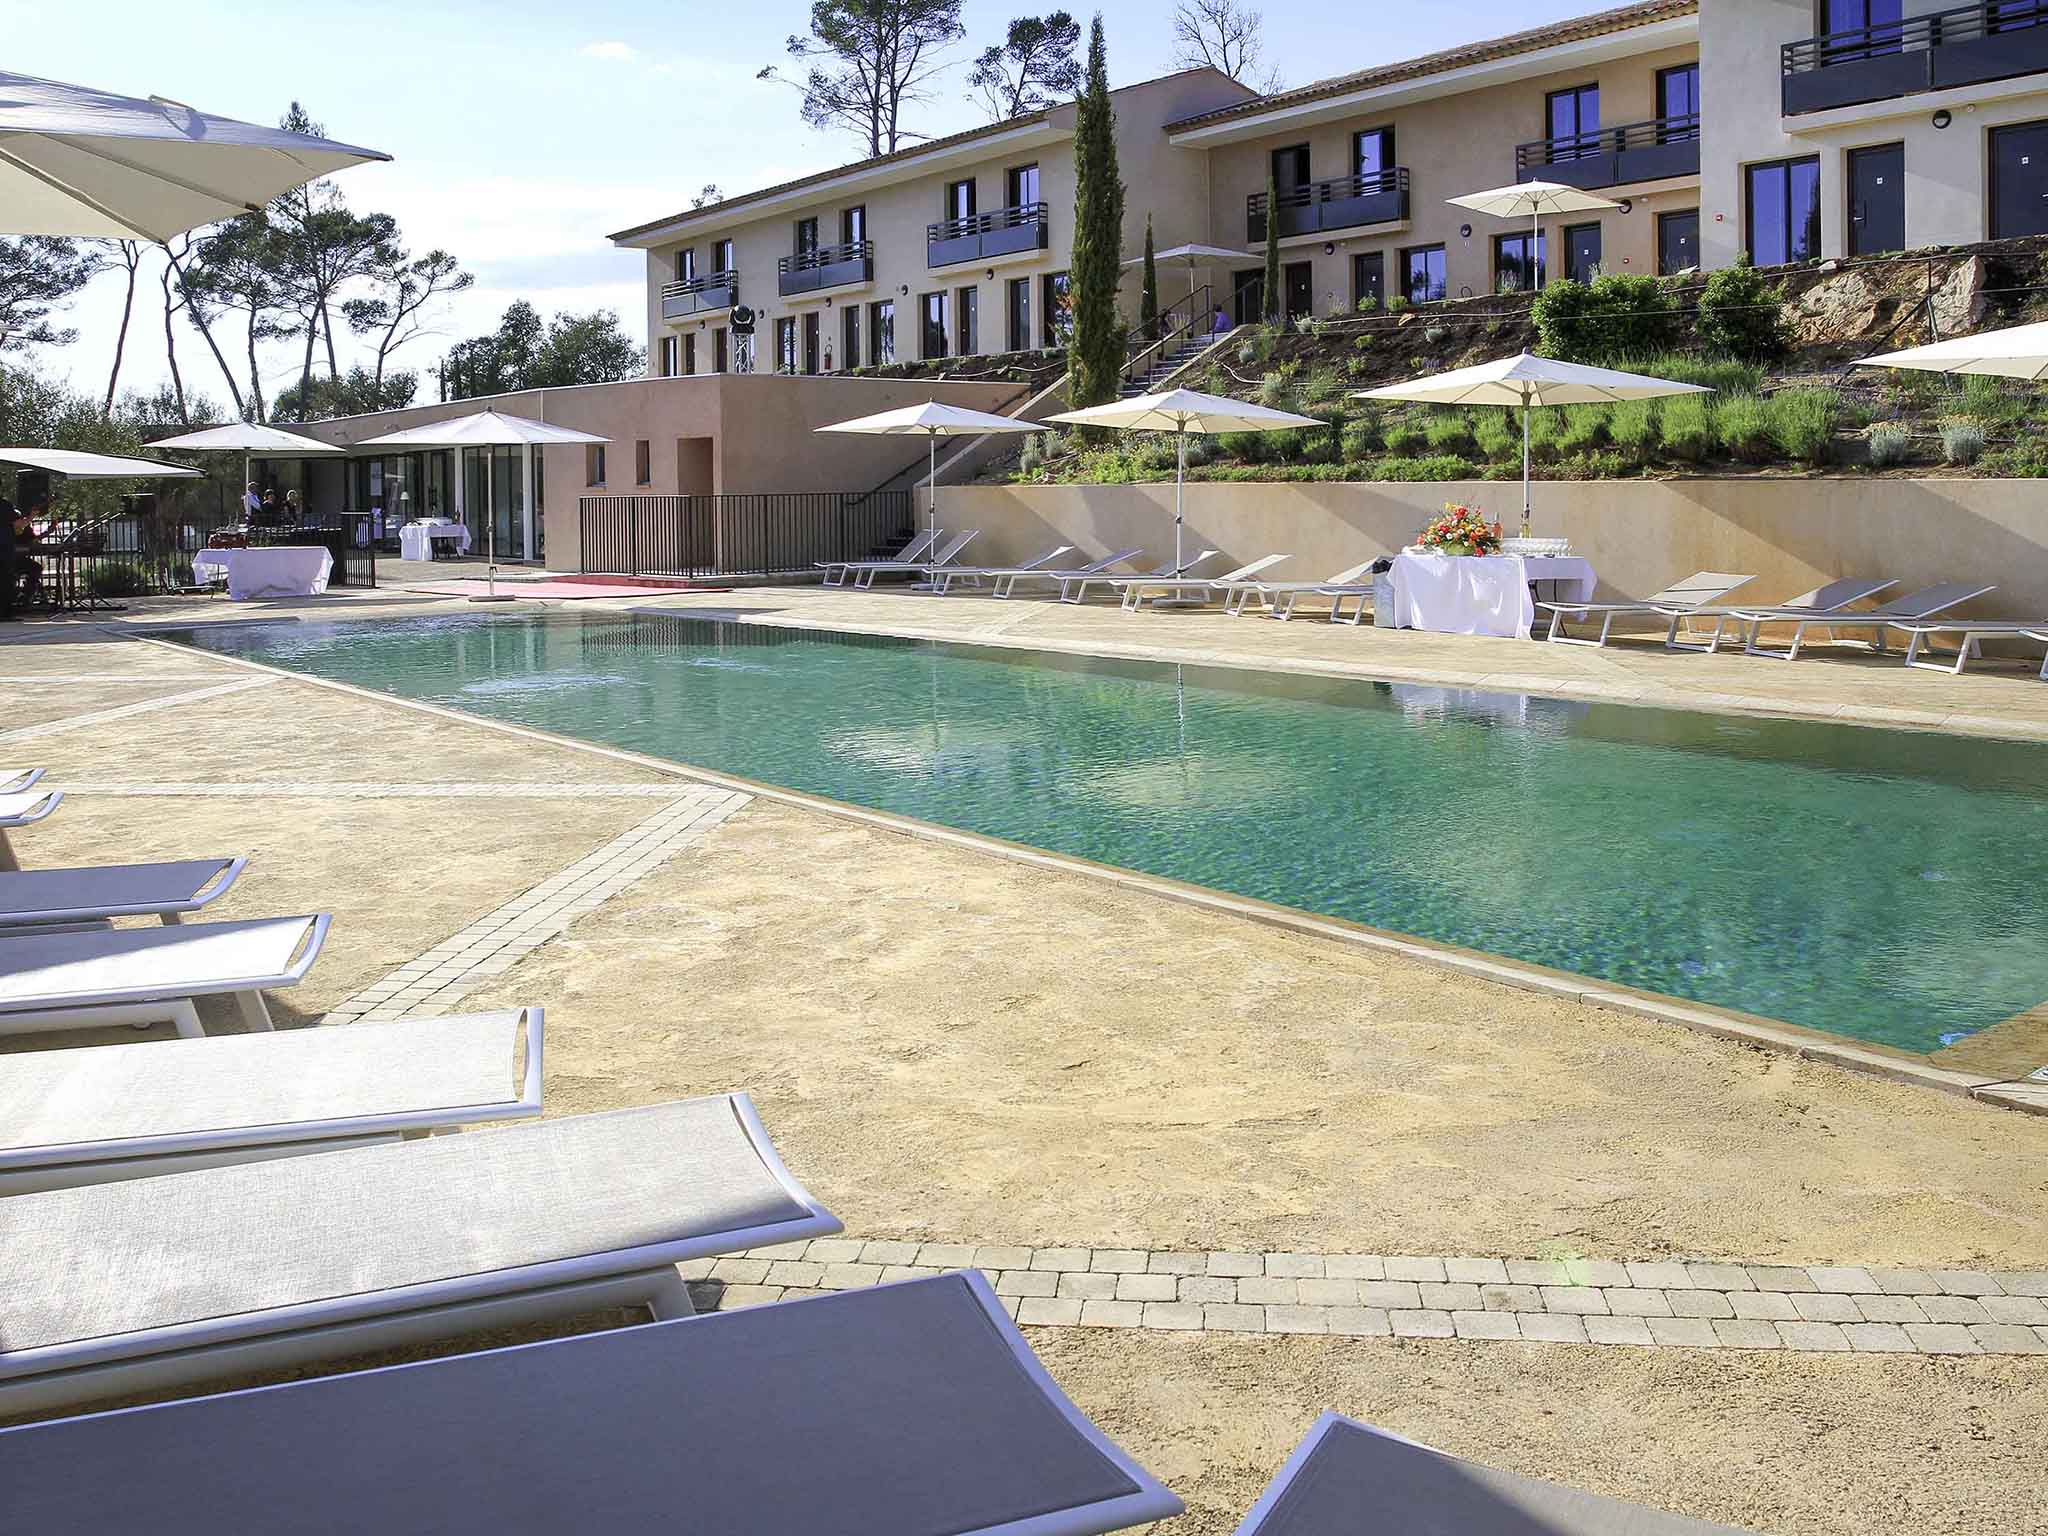 Hotel - Mercure Brignoles Golf de Barbaroux & Spa